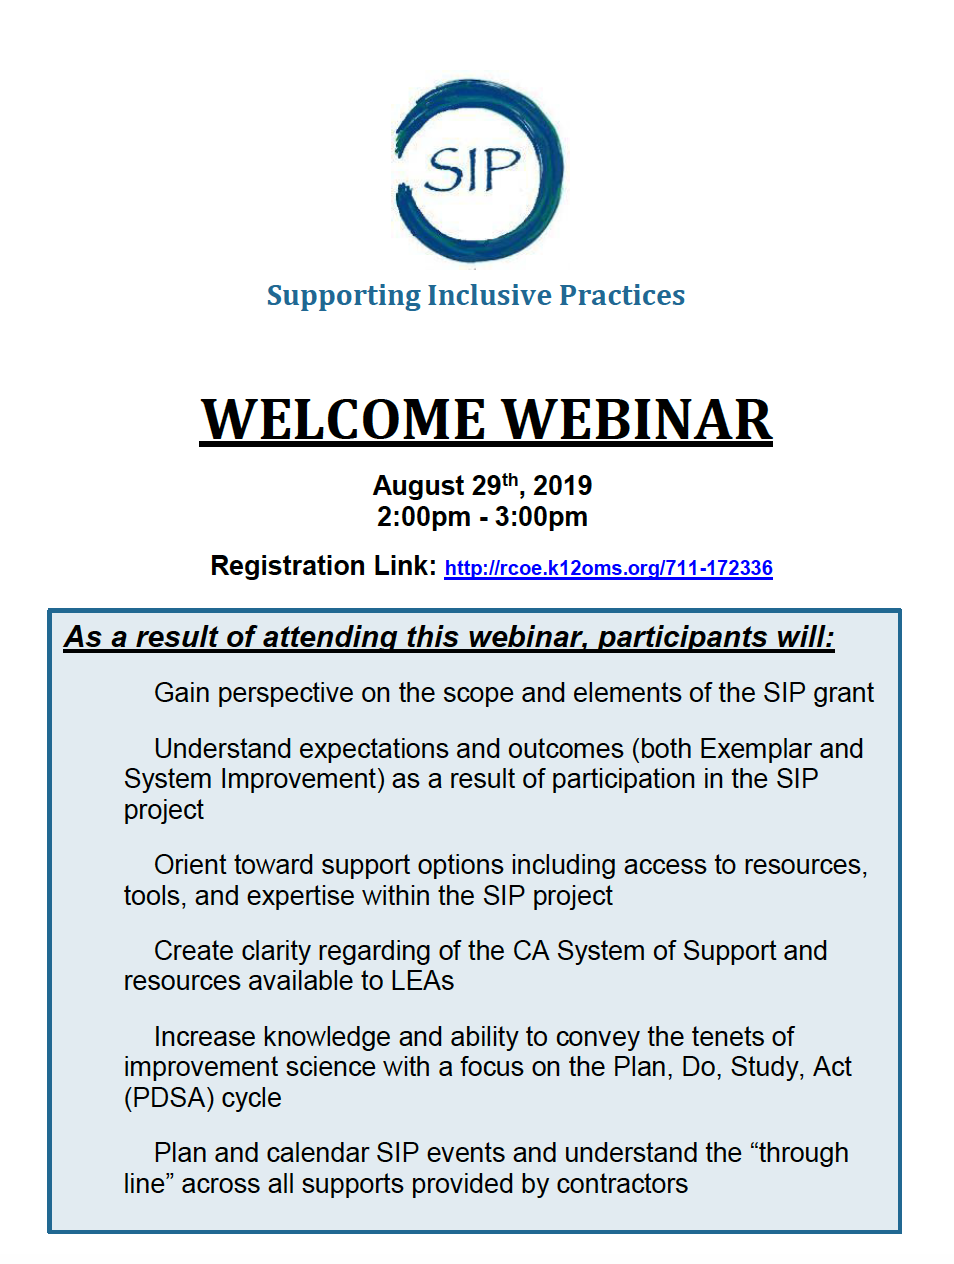 SIP Grantee Welcome Webinar